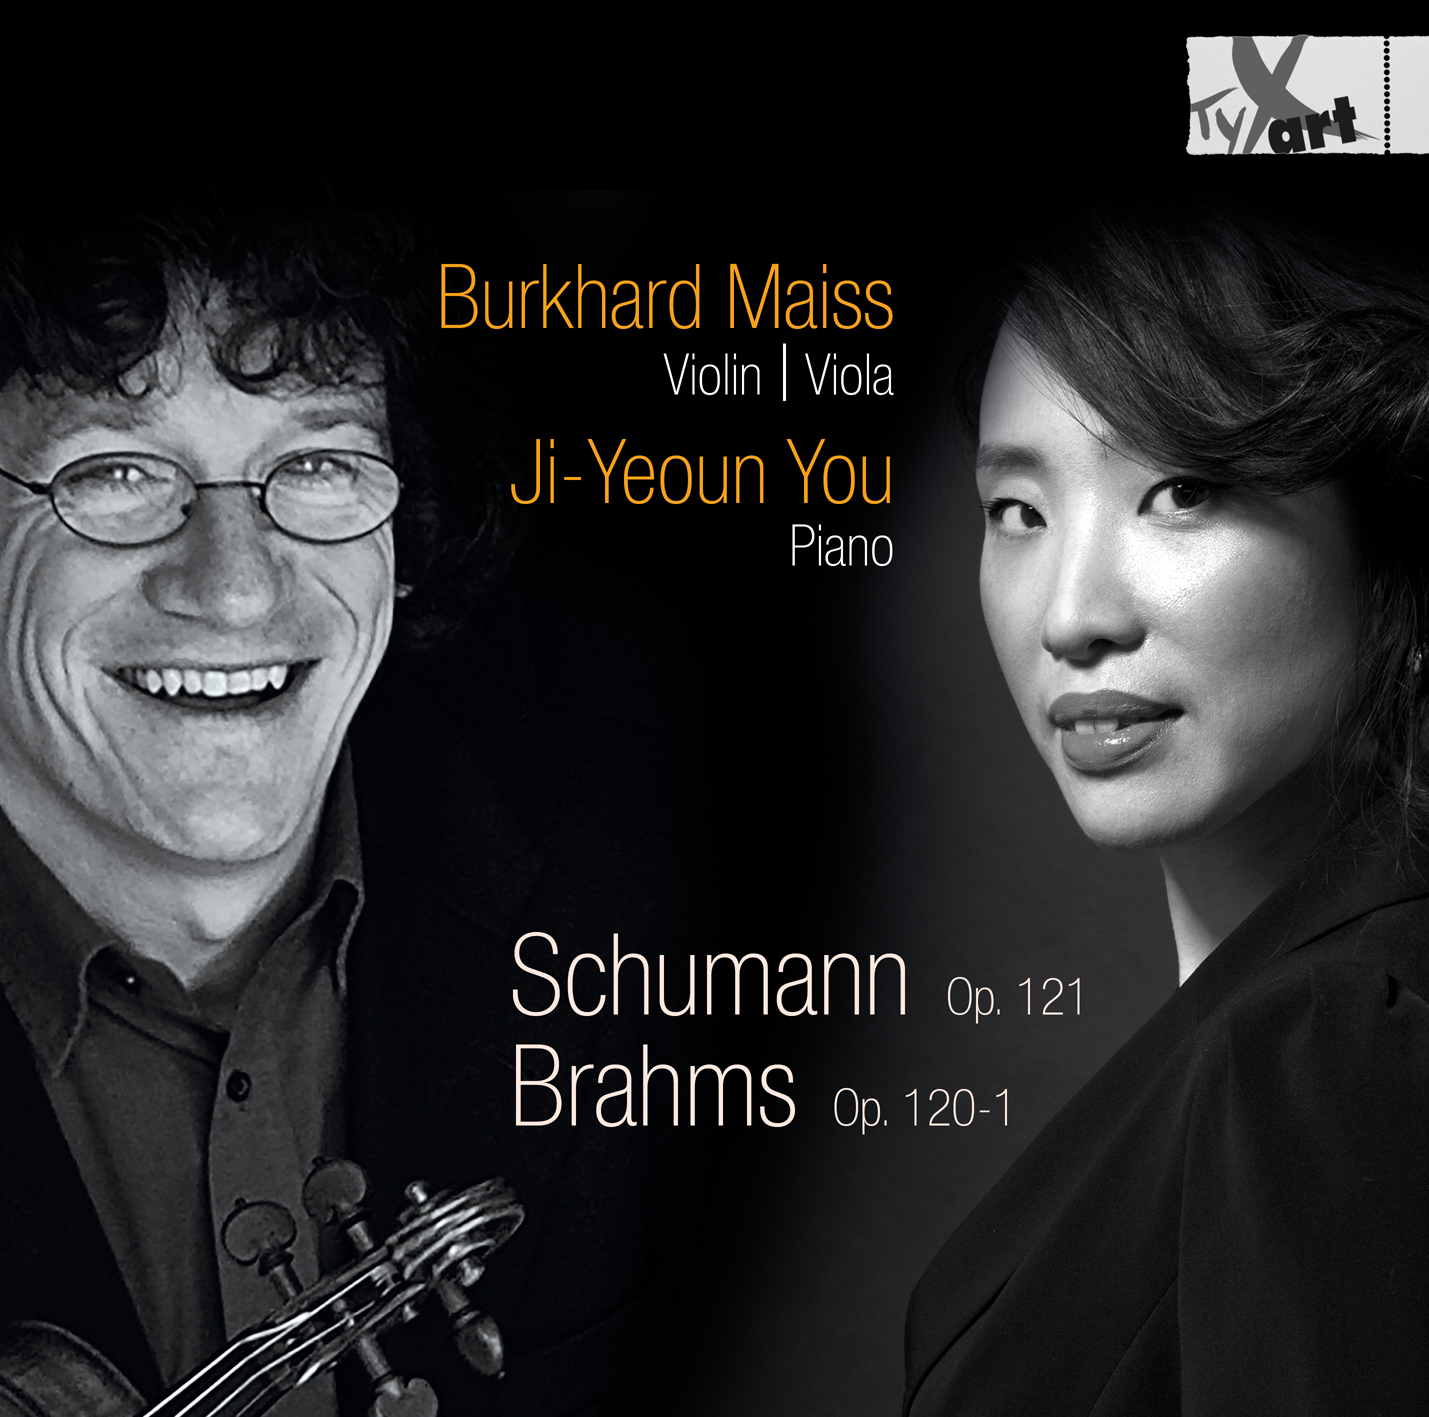 Duo Maiss You (Violin | Viola, Piano): Schumann - Brahms